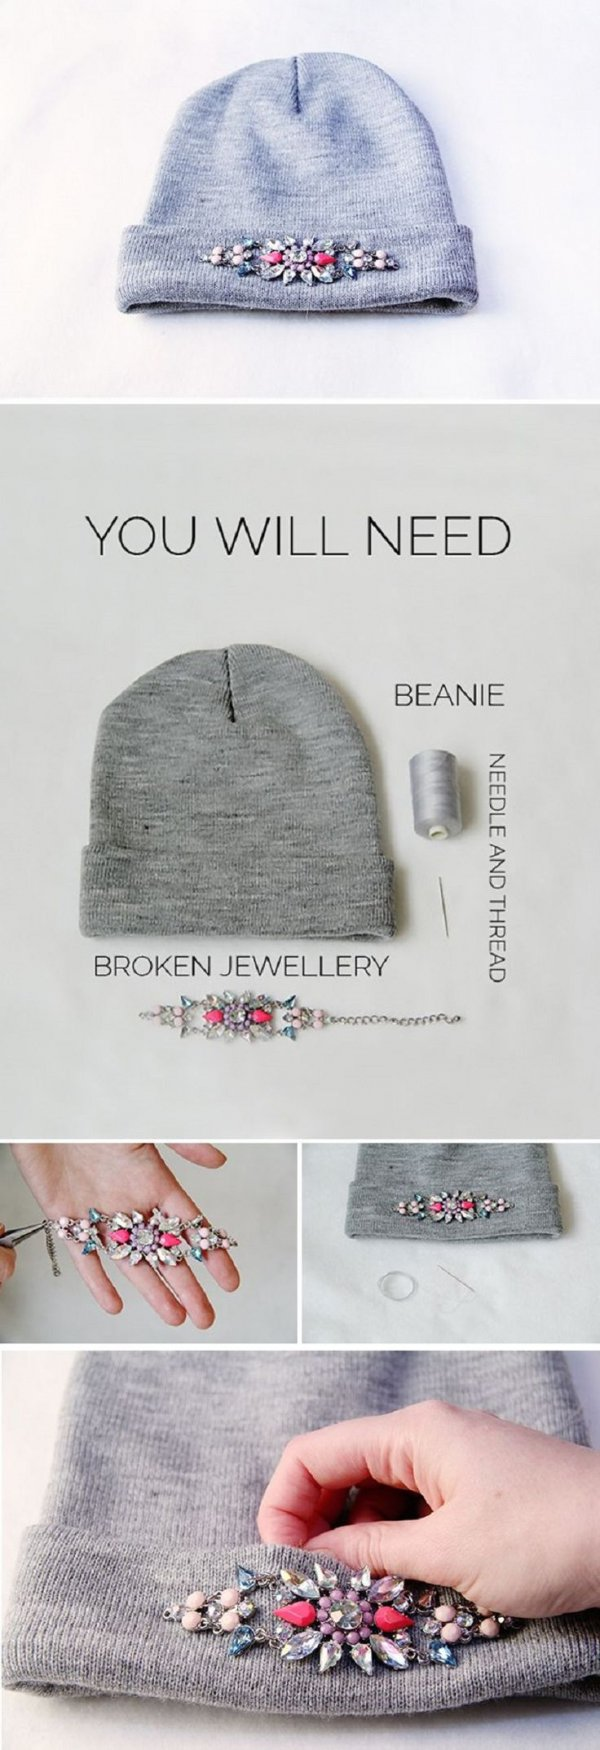 Beanie + Broken Jewelry = Magic